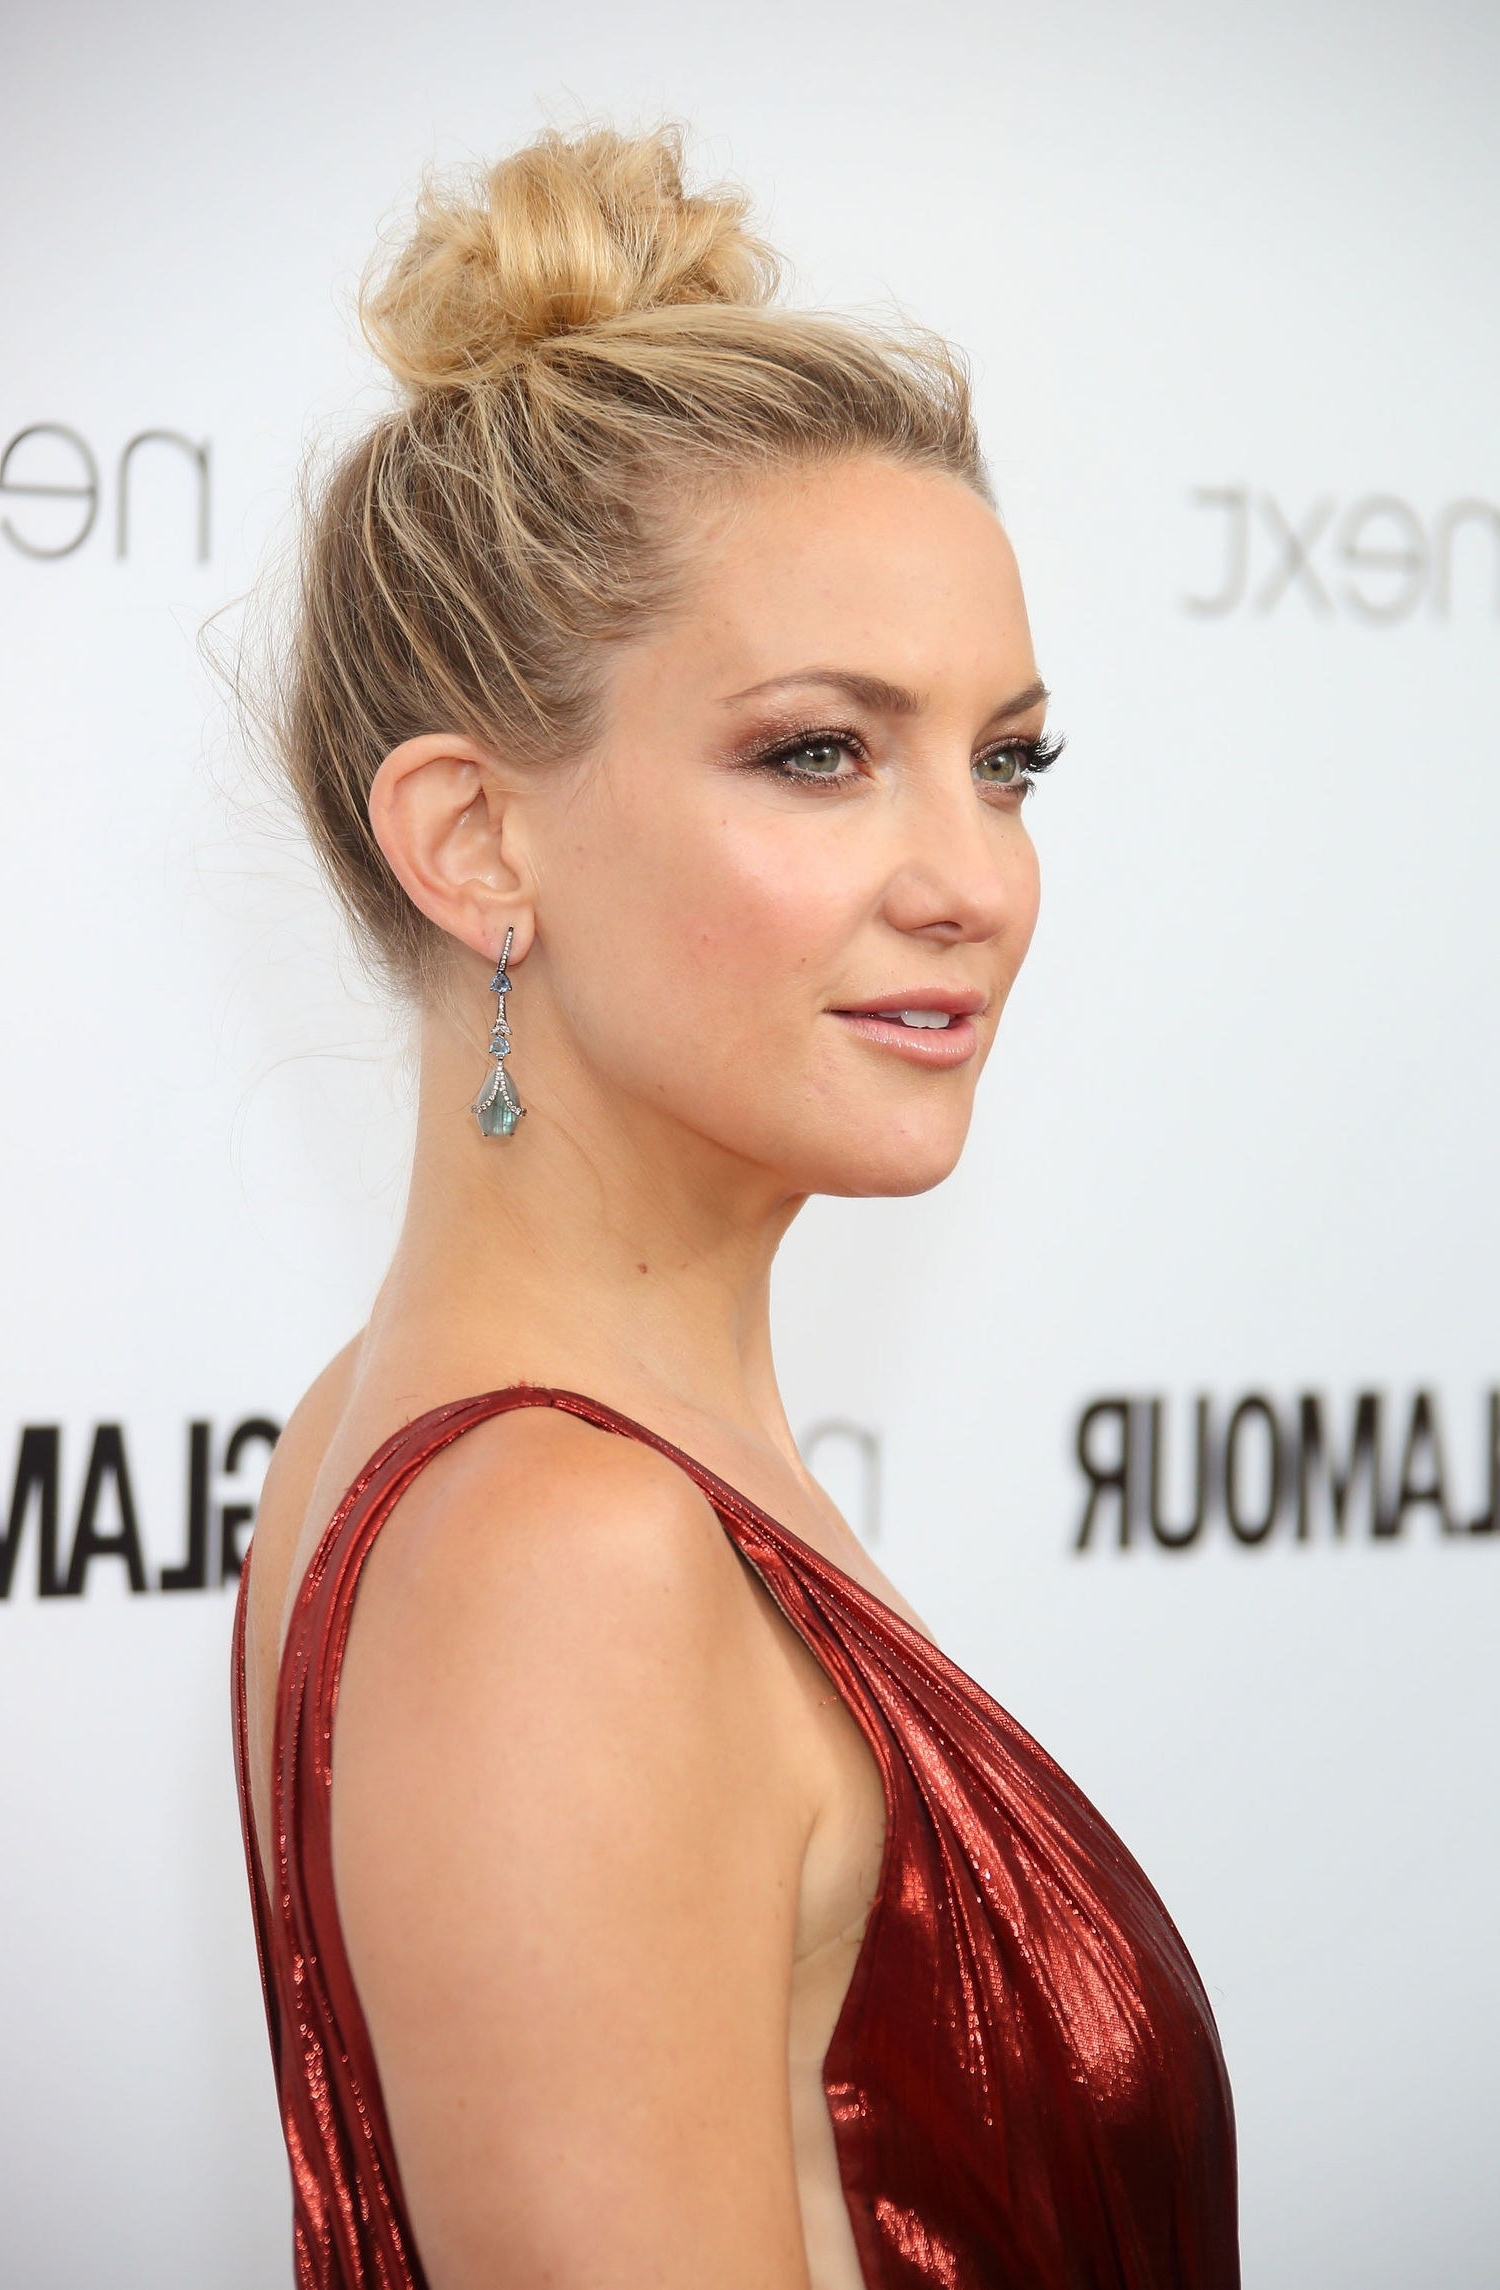 Celebrities Wear Messy Bun Hairstyles To The Glamour U.k (View 12 of 15)